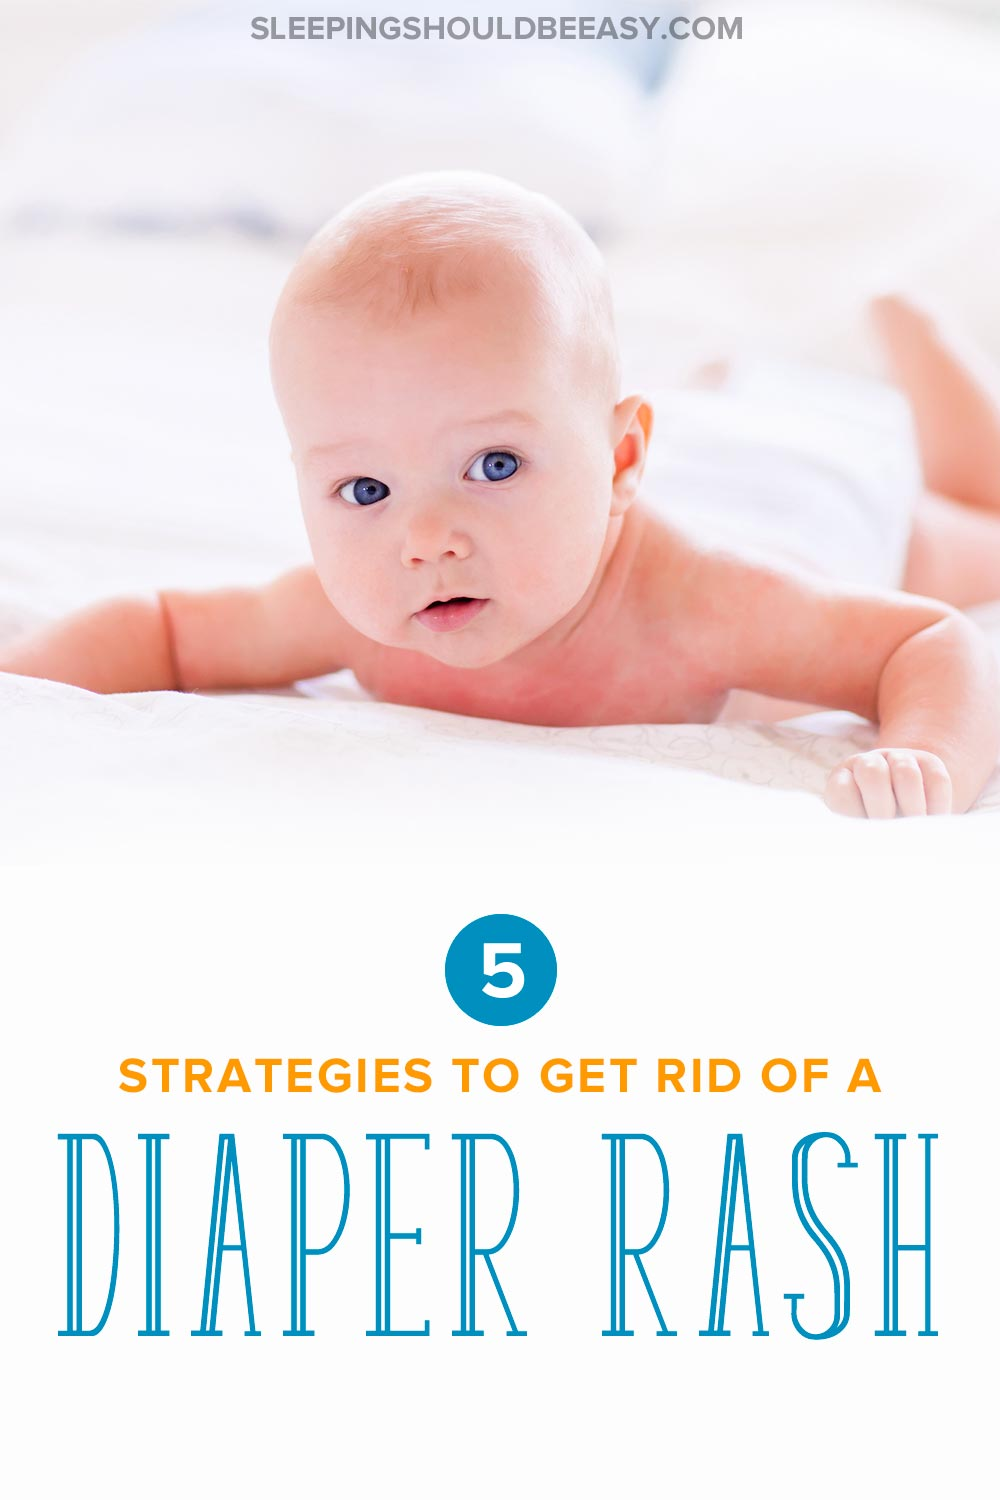 How to get rid of a diaper rash in 24 hours